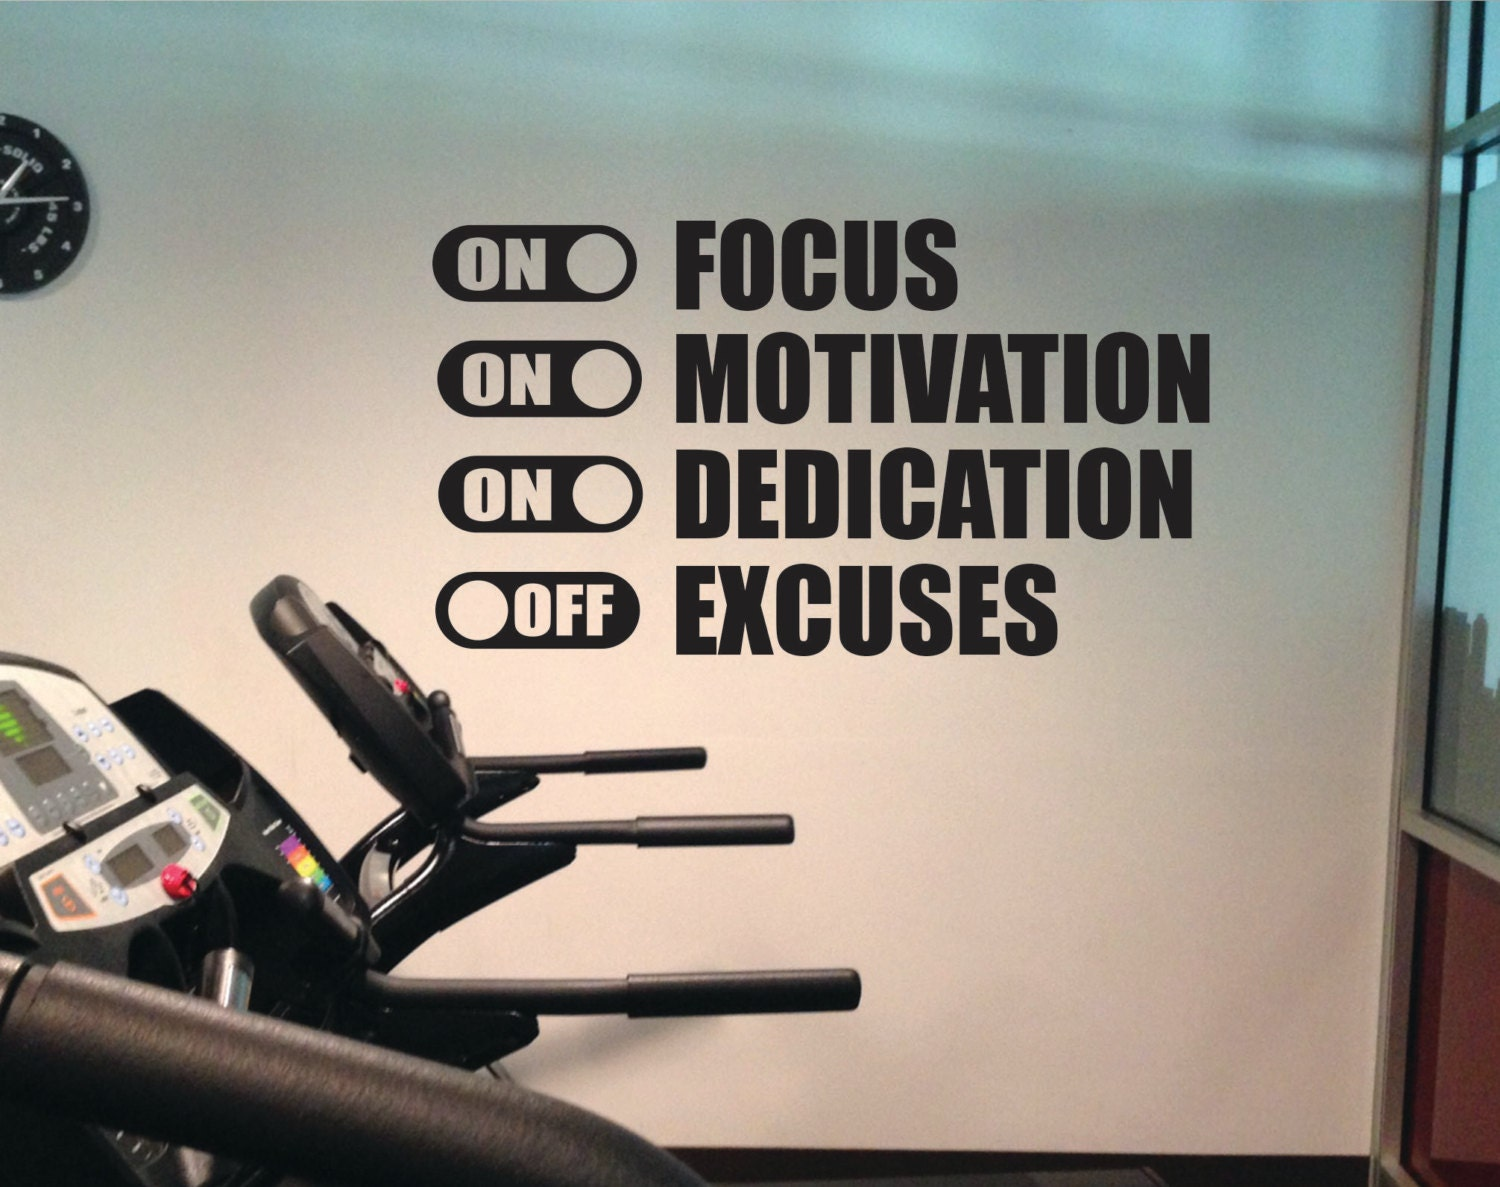 office wall decal. Fitness Wall Decal, Classroom Decor, Office FOCUS MOTIVATION DEDICATION On Excuses Off Decal L